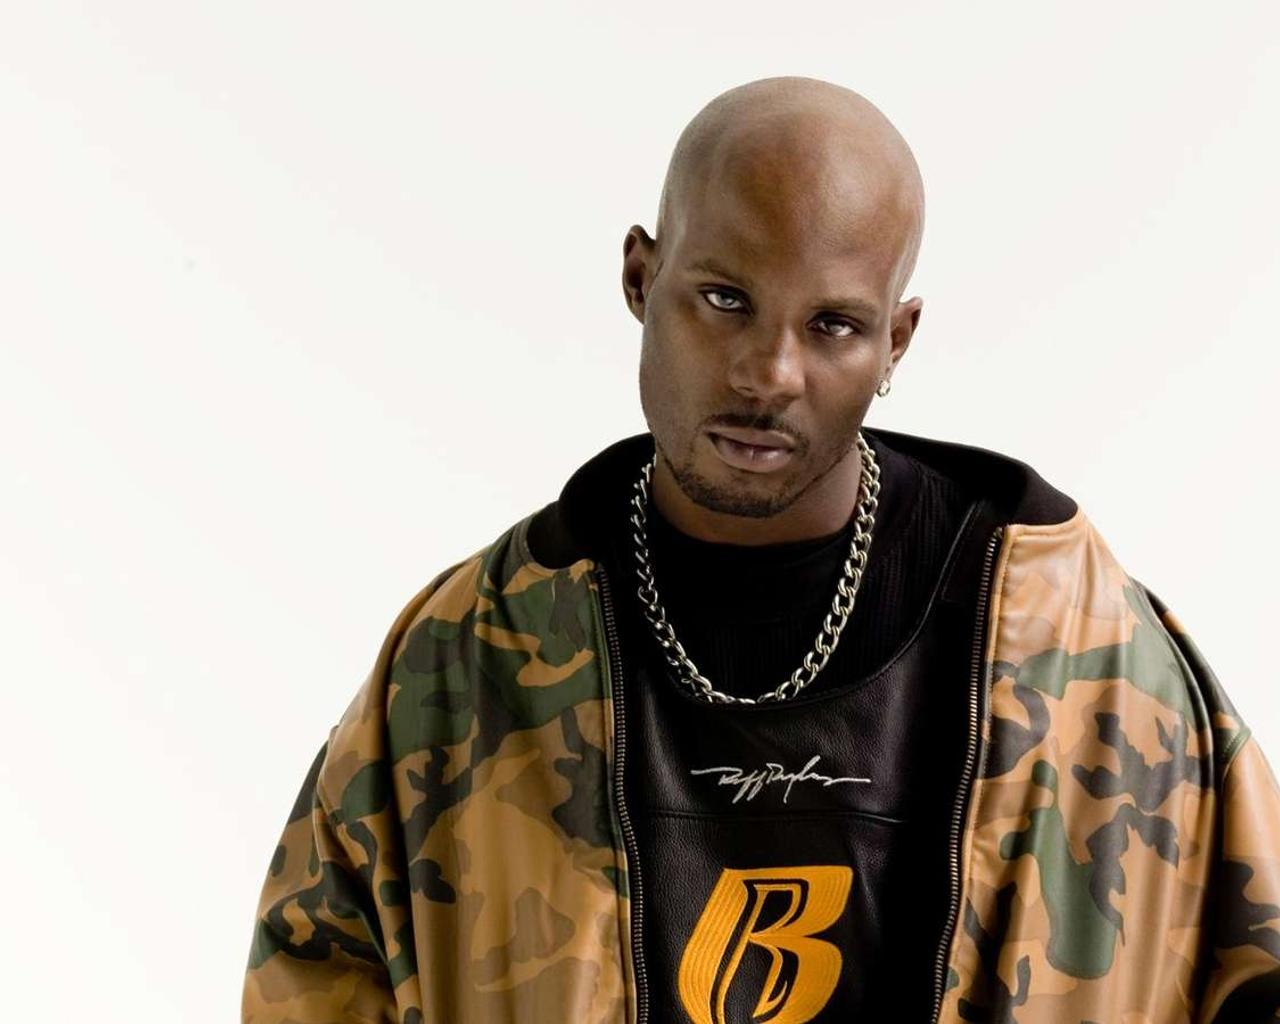 DMX was a legendary rapper who preached confidence and perseverance.